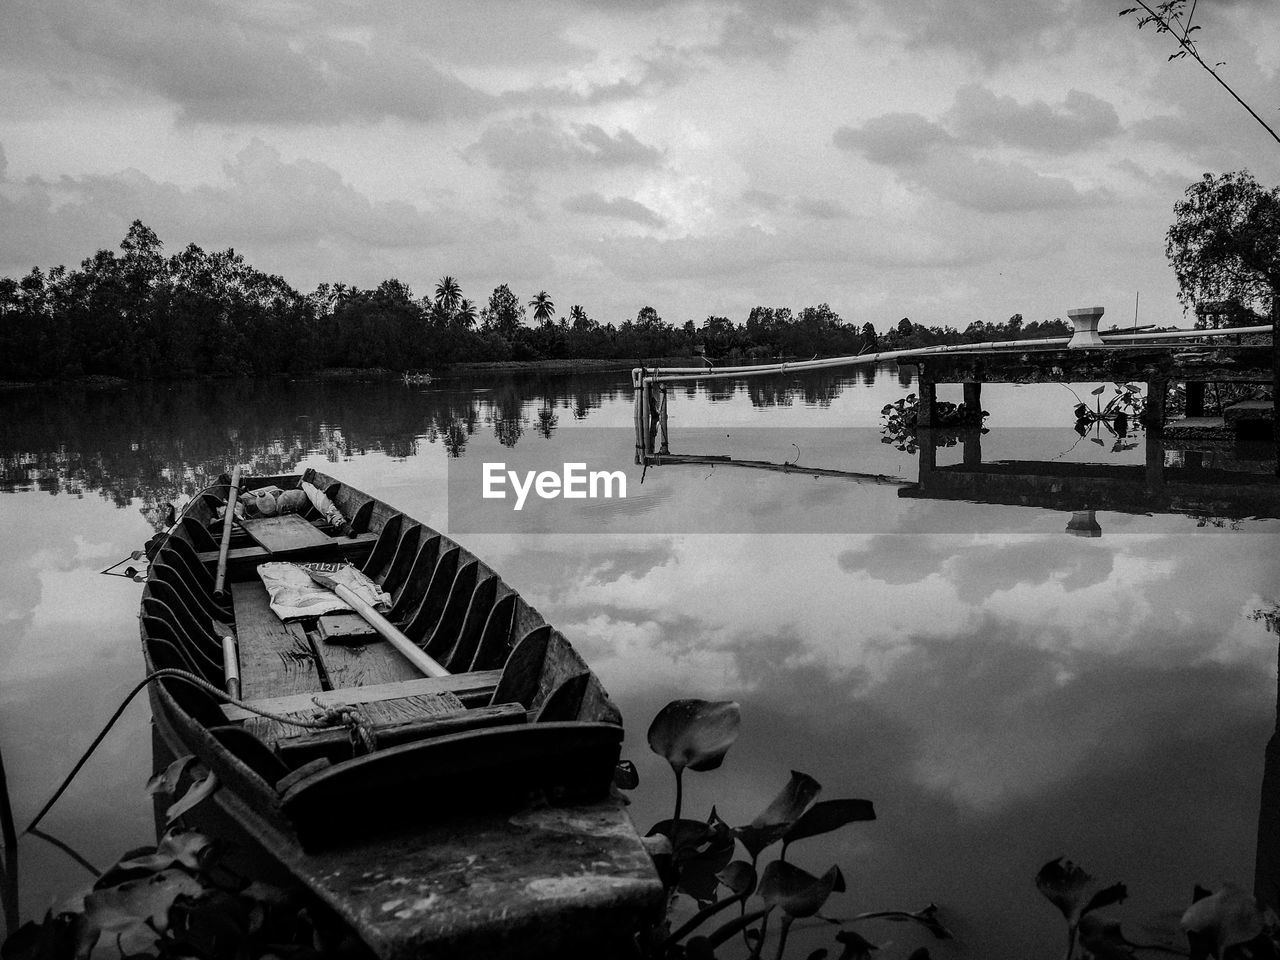 water, sky, cloud - sky, lake, nature, reflection, tree, nautical vessel, transportation, mode of transportation, plant, tranquility, tranquil scene, day, scenics - nature, beauty in nature, no people, outdoors, moored